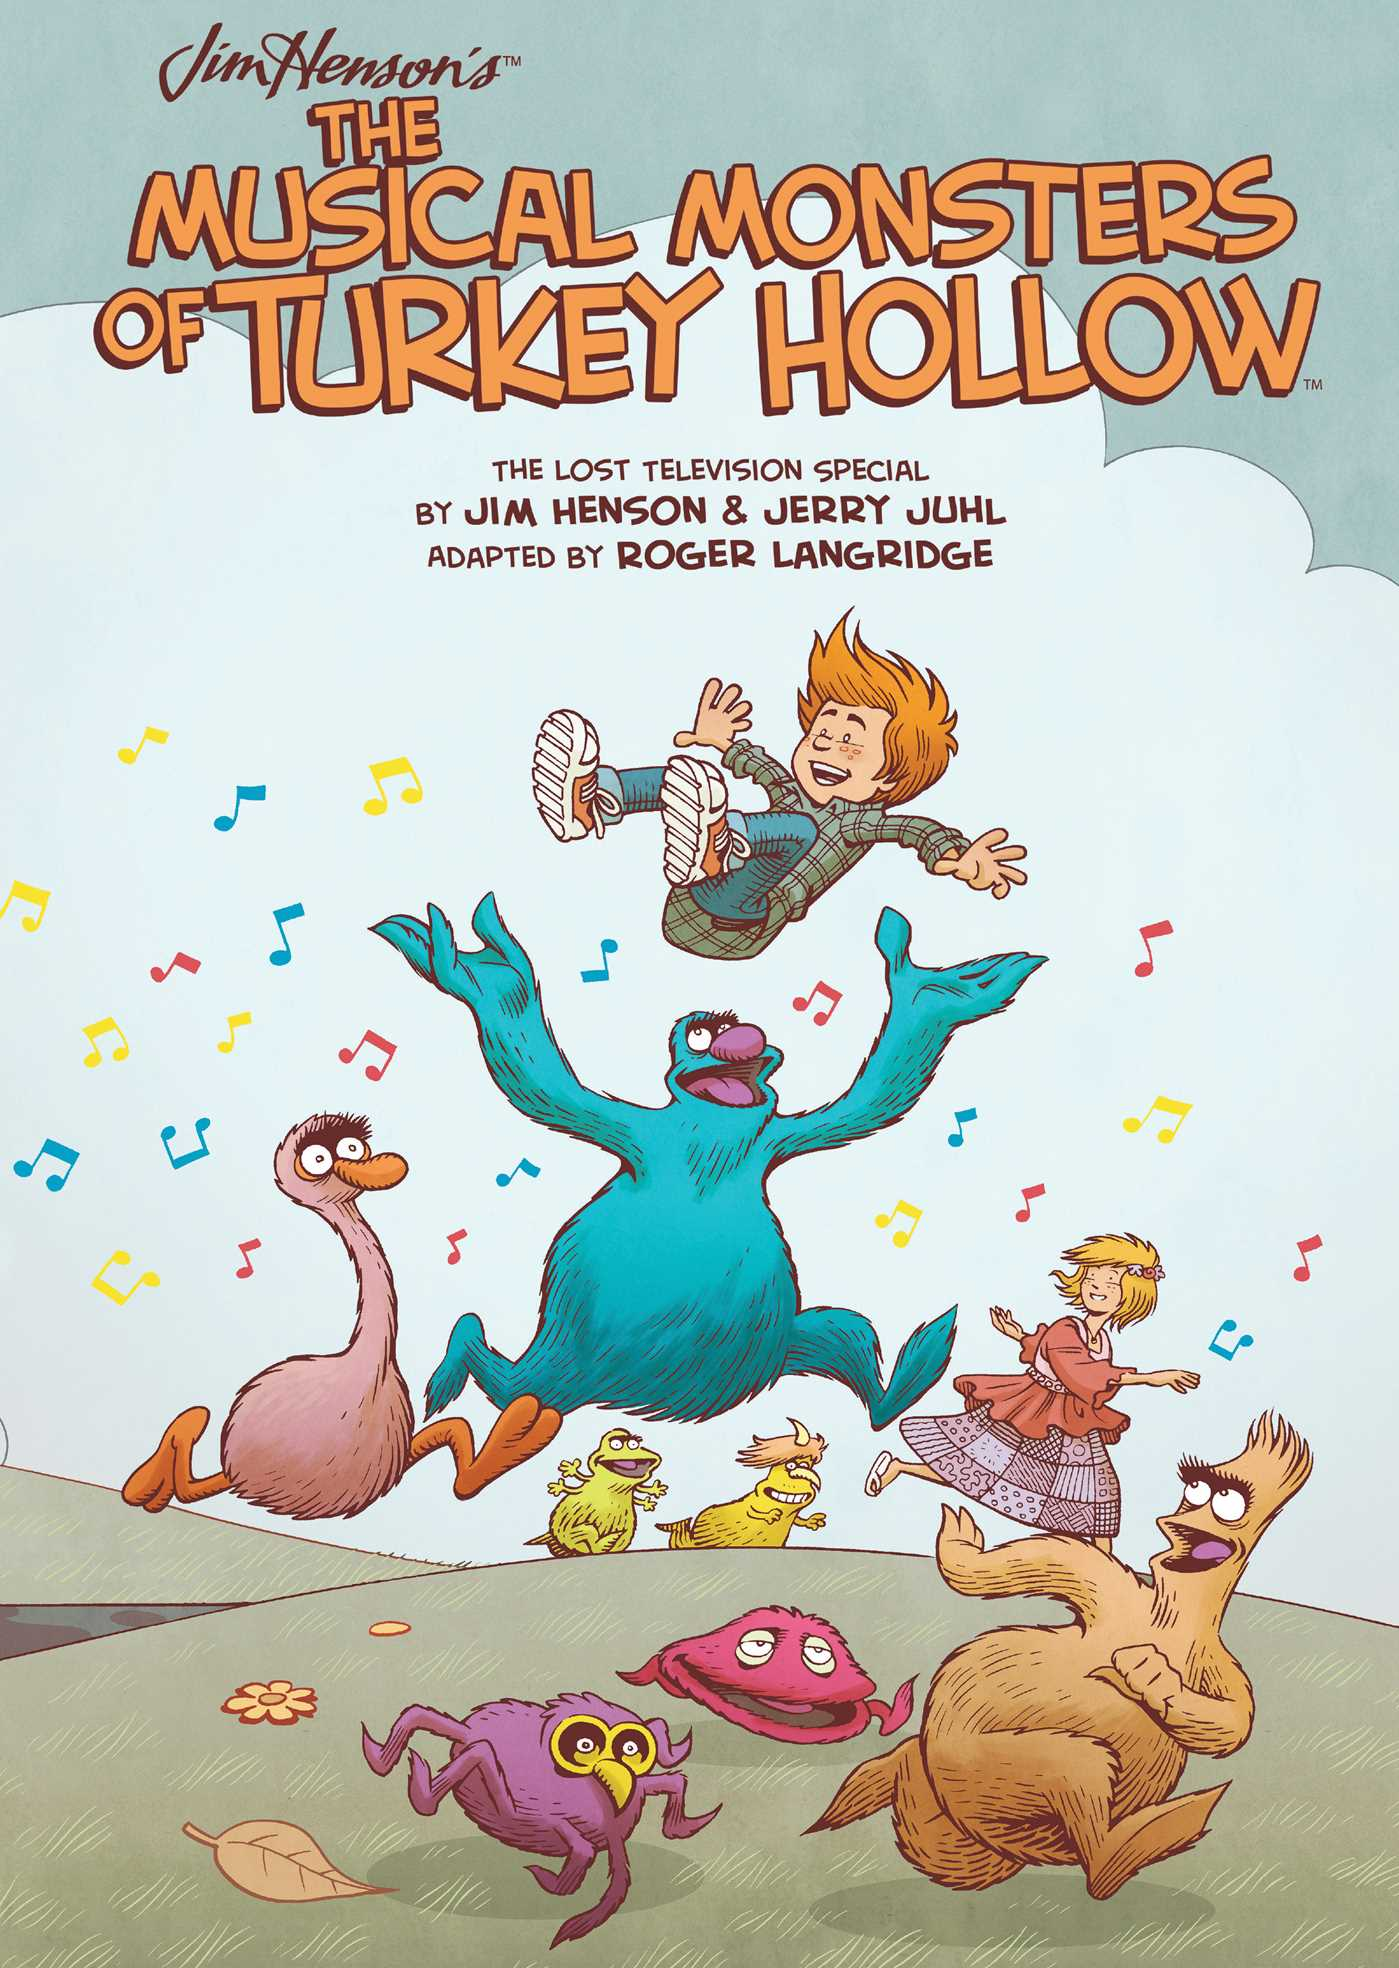 Jim-hensons-the-musical-monsters-of-turkey-ogn-9781608864348_hr